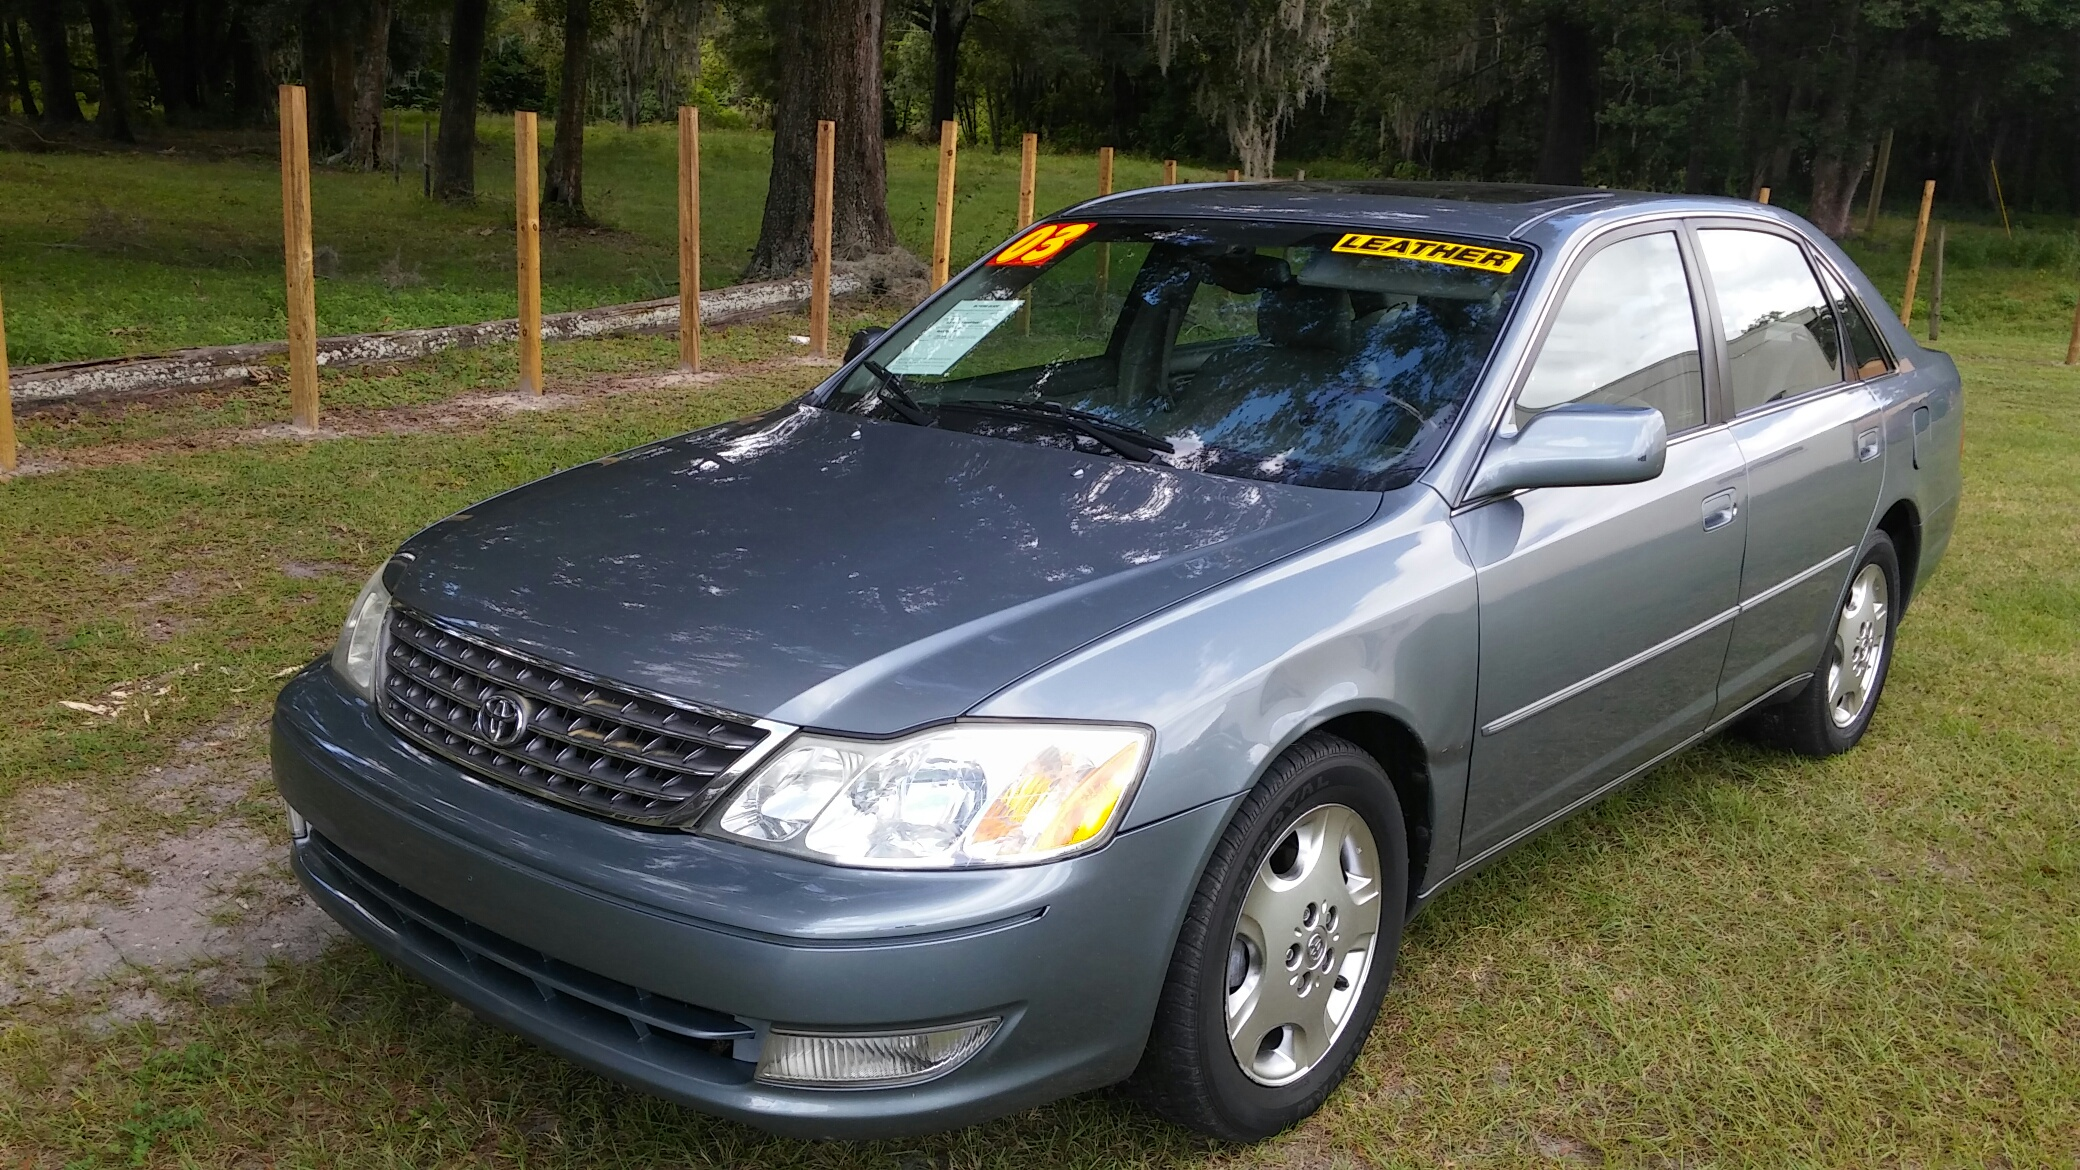 2003 Toyota Avalon $1700.00 down